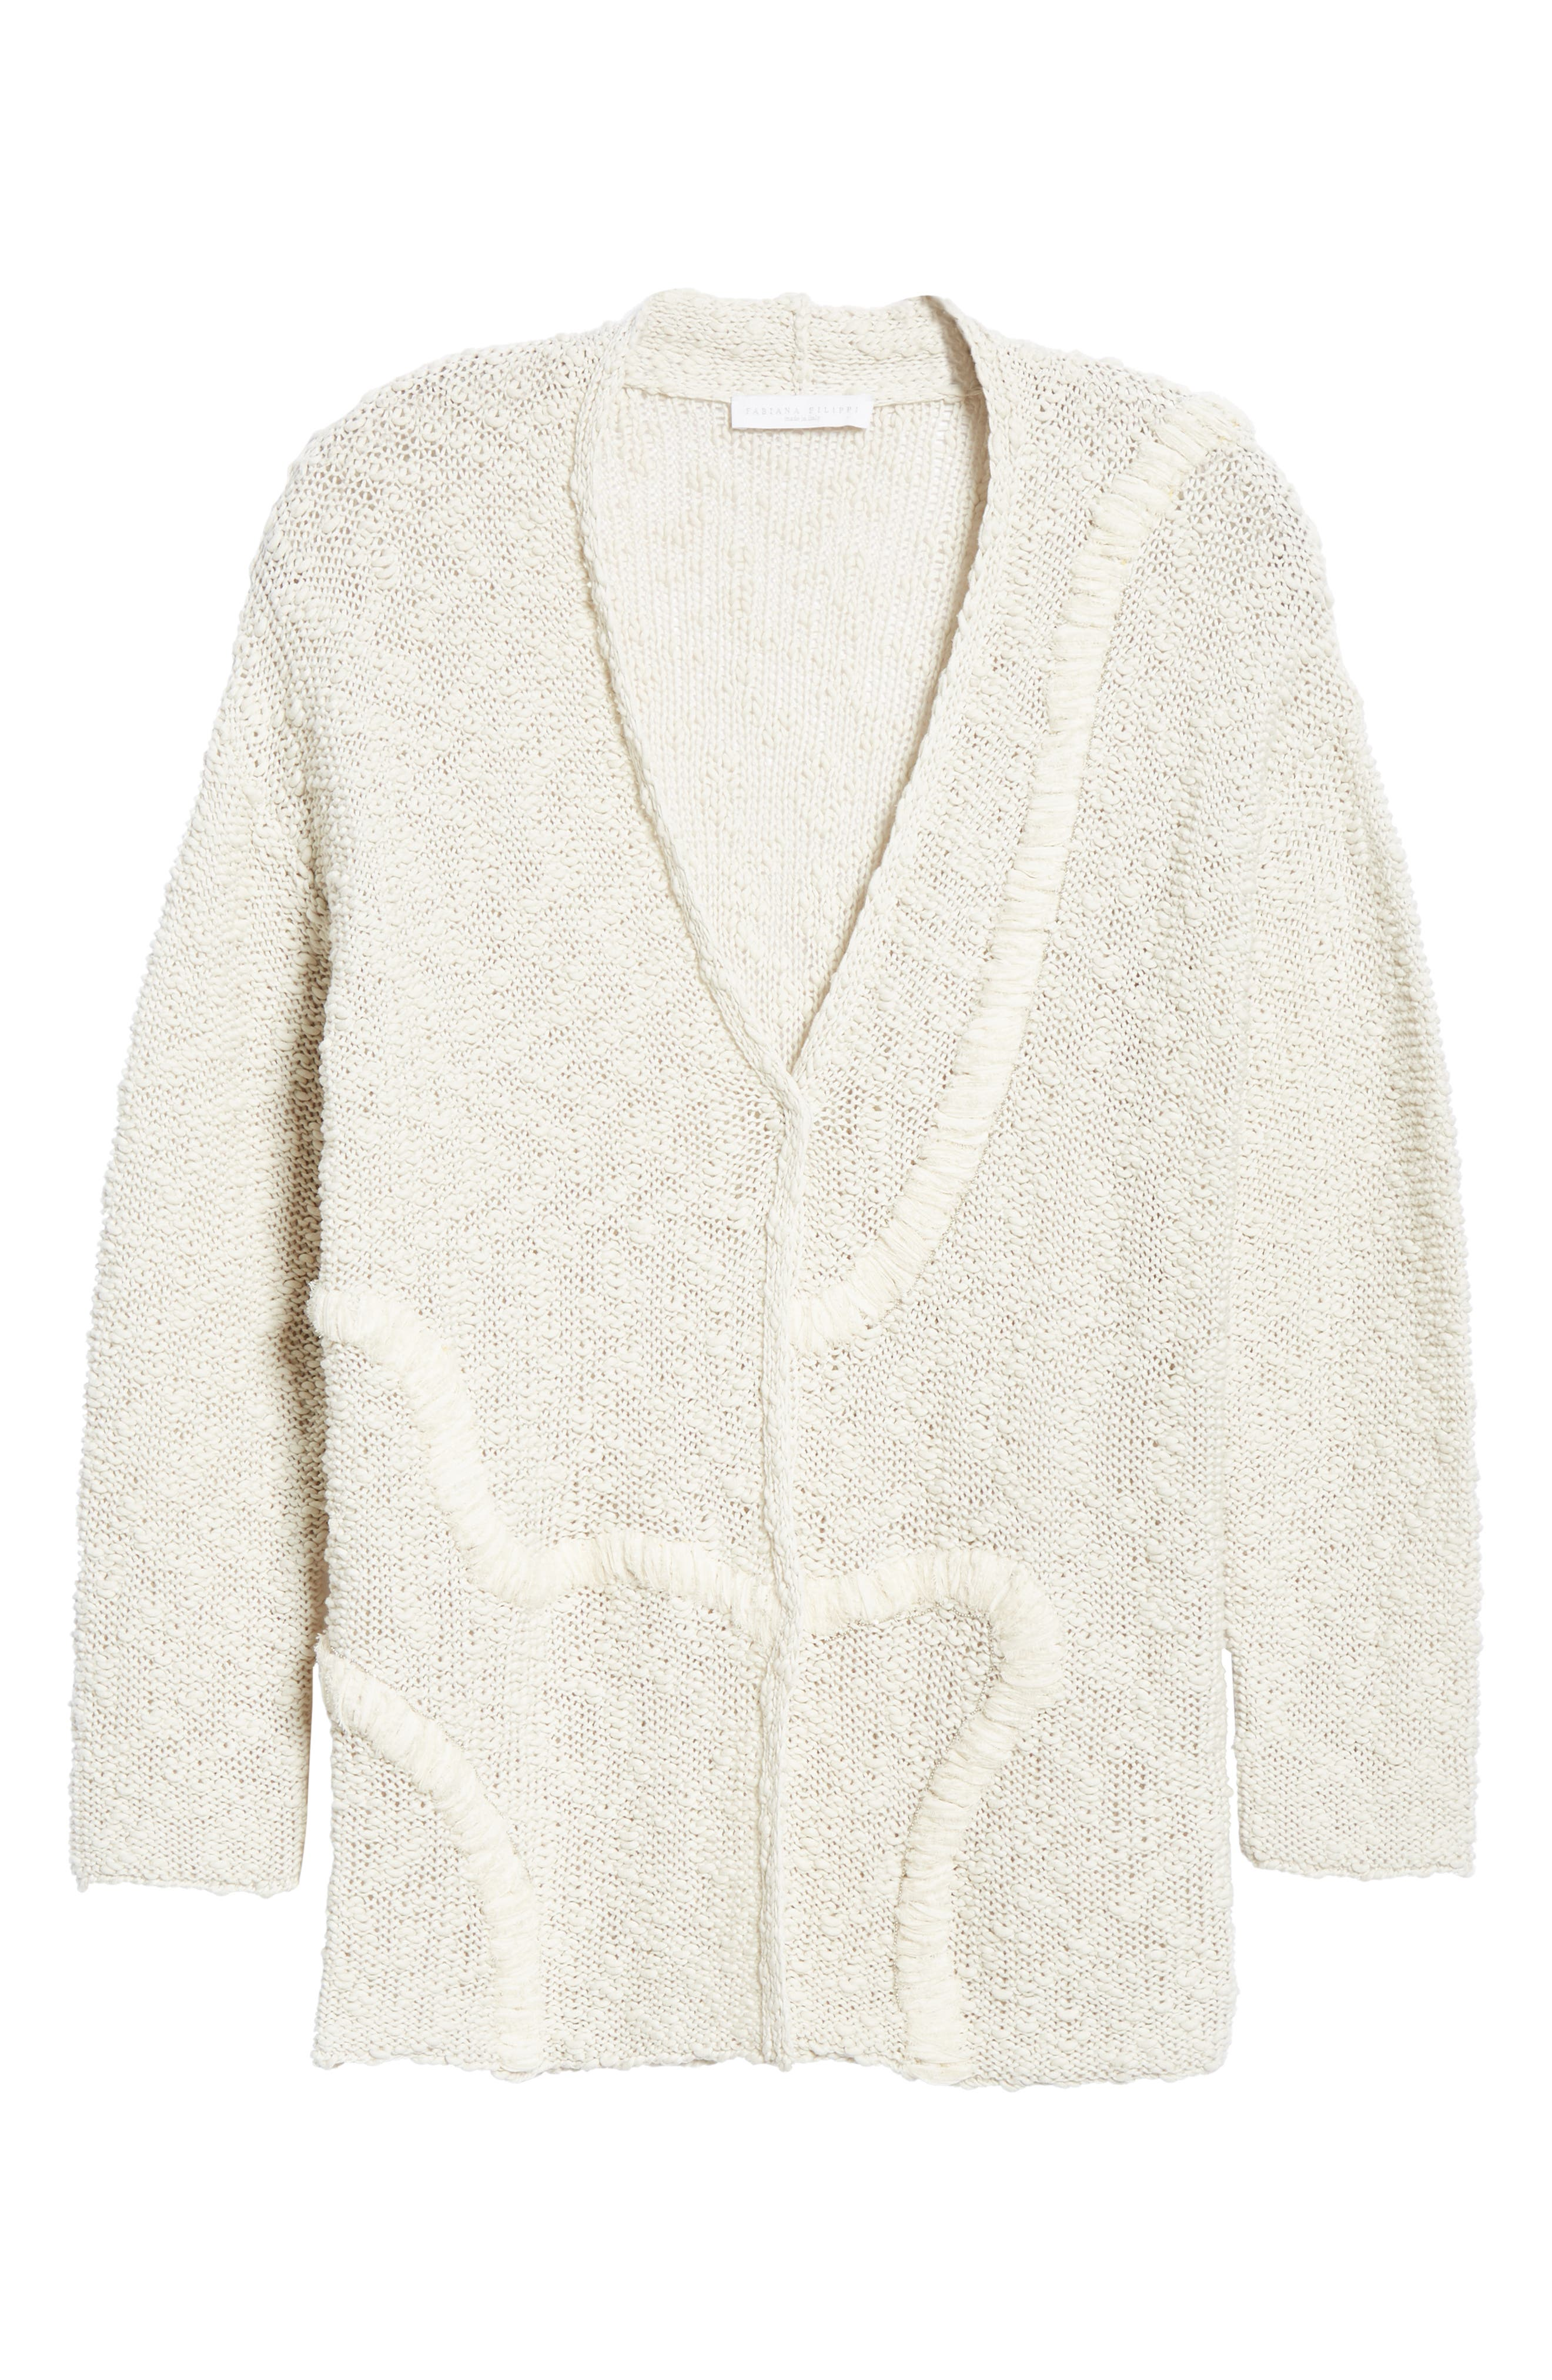 Embroidered Long Cardigan,                             Alternate thumbnail 6, color,                             BEIGE